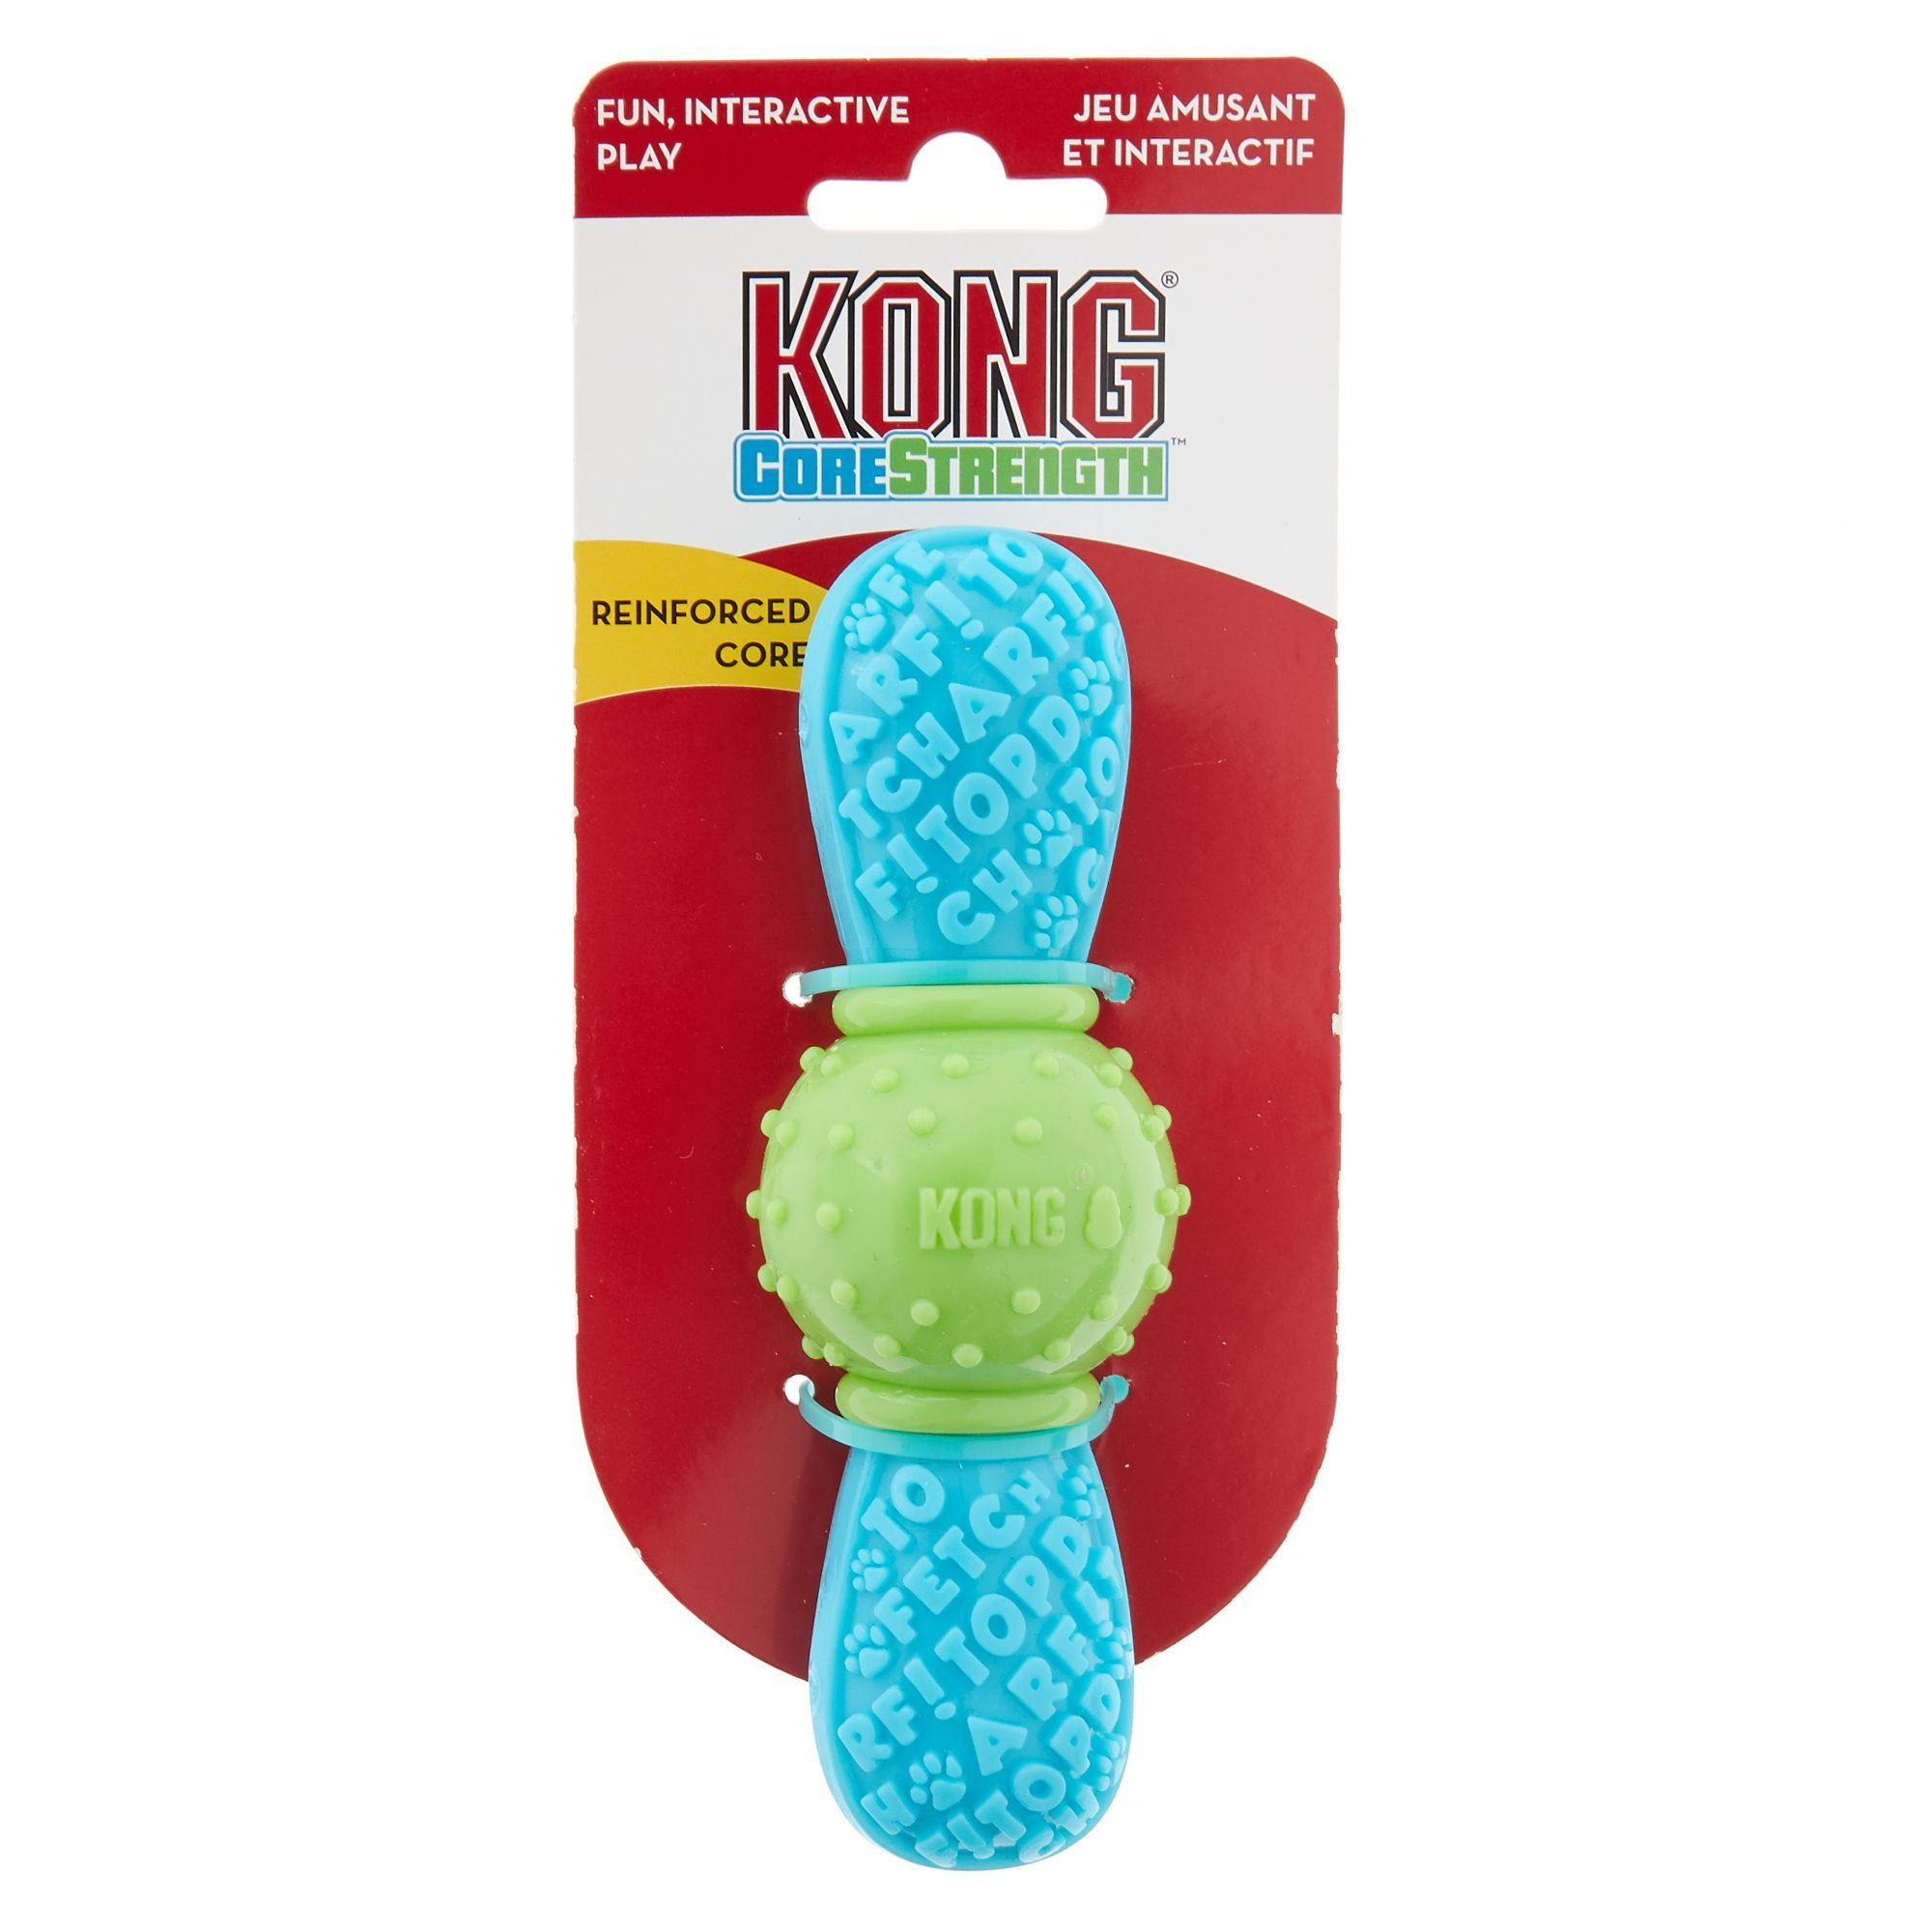 Kong Corestrength Bow Tie Dog Toy Size Small Medium Blue Green